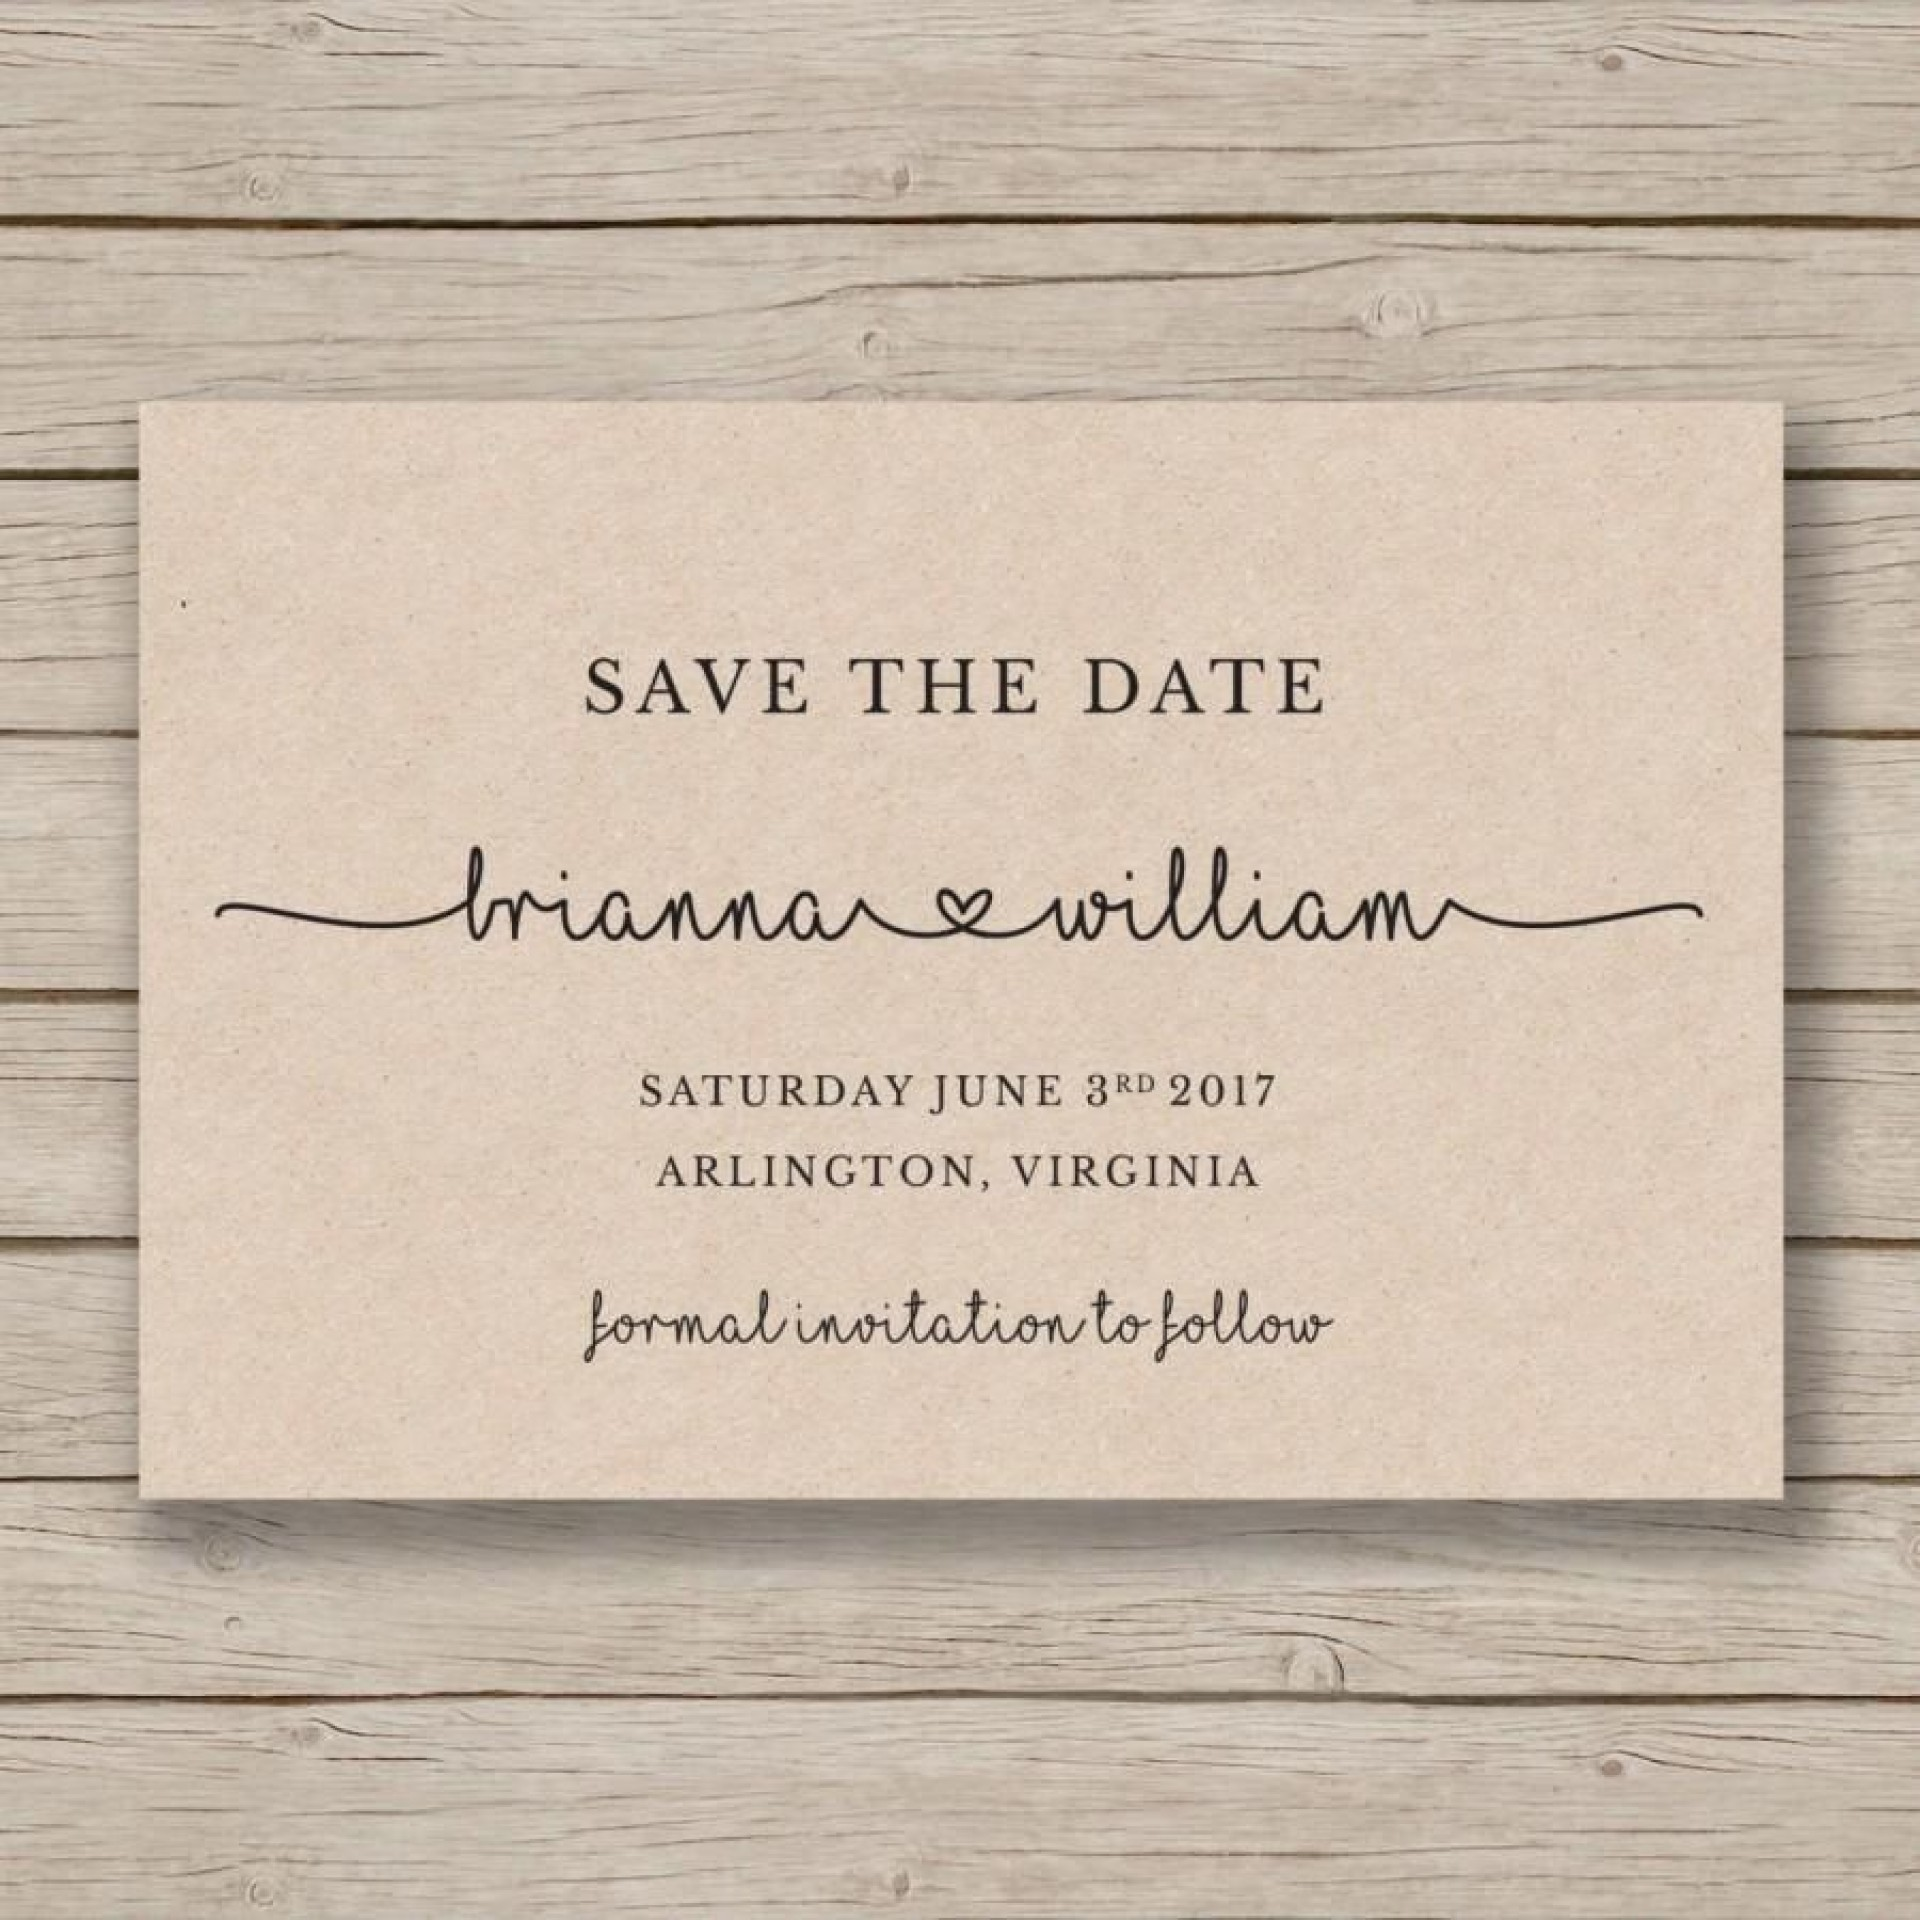 008 Remarkable Save The Date Template Word High Def  Free Customizable For Holiday Party1920